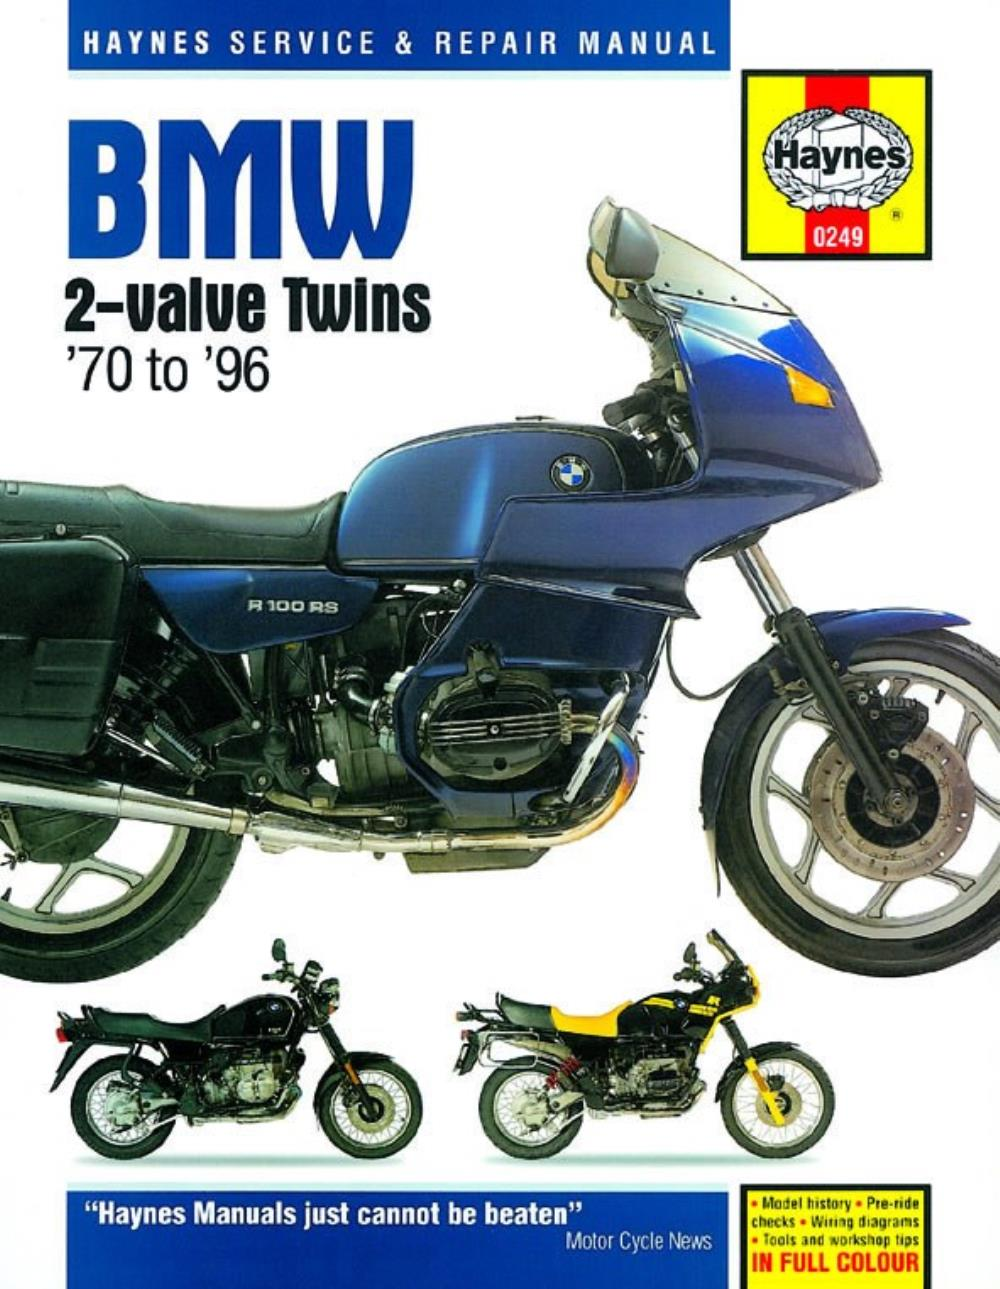 Manual Haynes For 1988 Bmw R 80 Gs Ebay 1150 Electrical Circuit Diagrams Image Is Loading